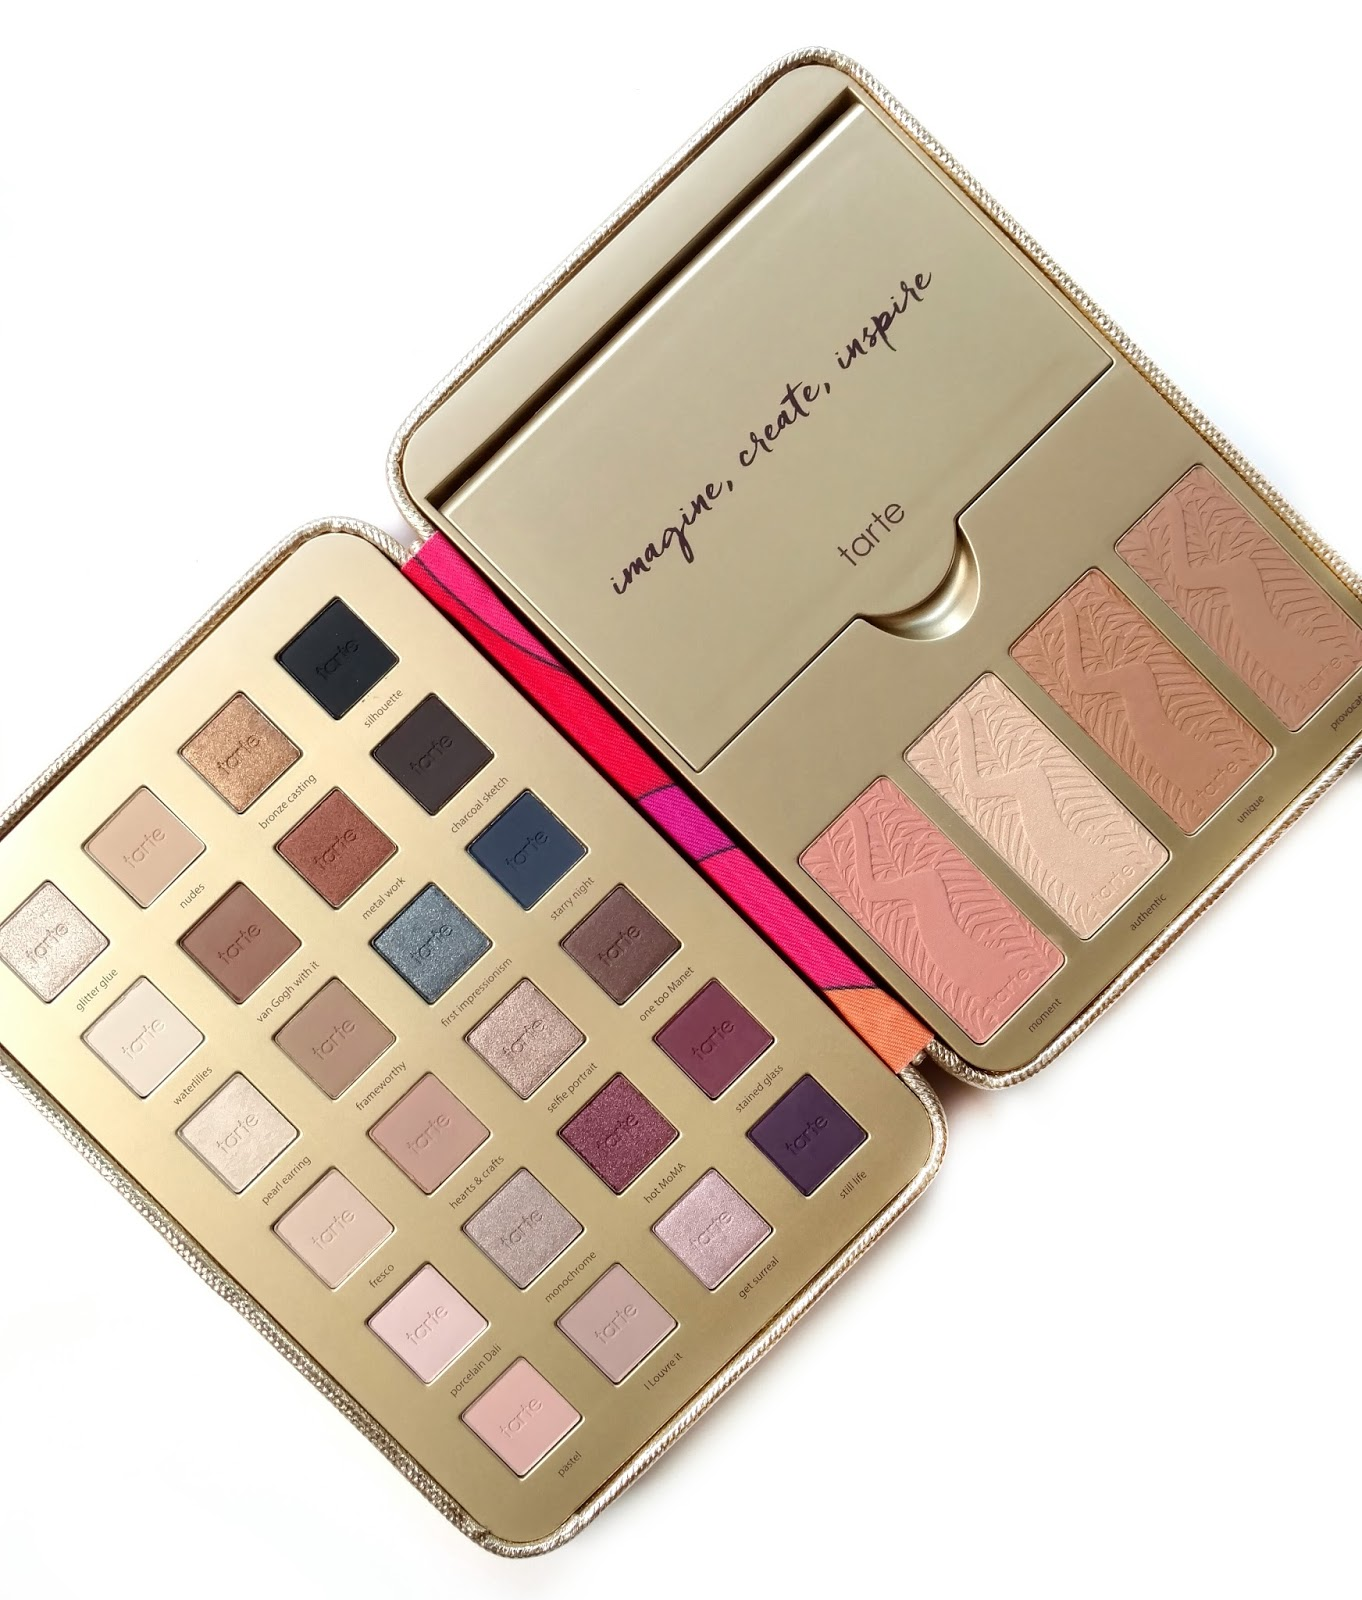 Paint Pretty Eye & Cheek Palette by Tarte #16